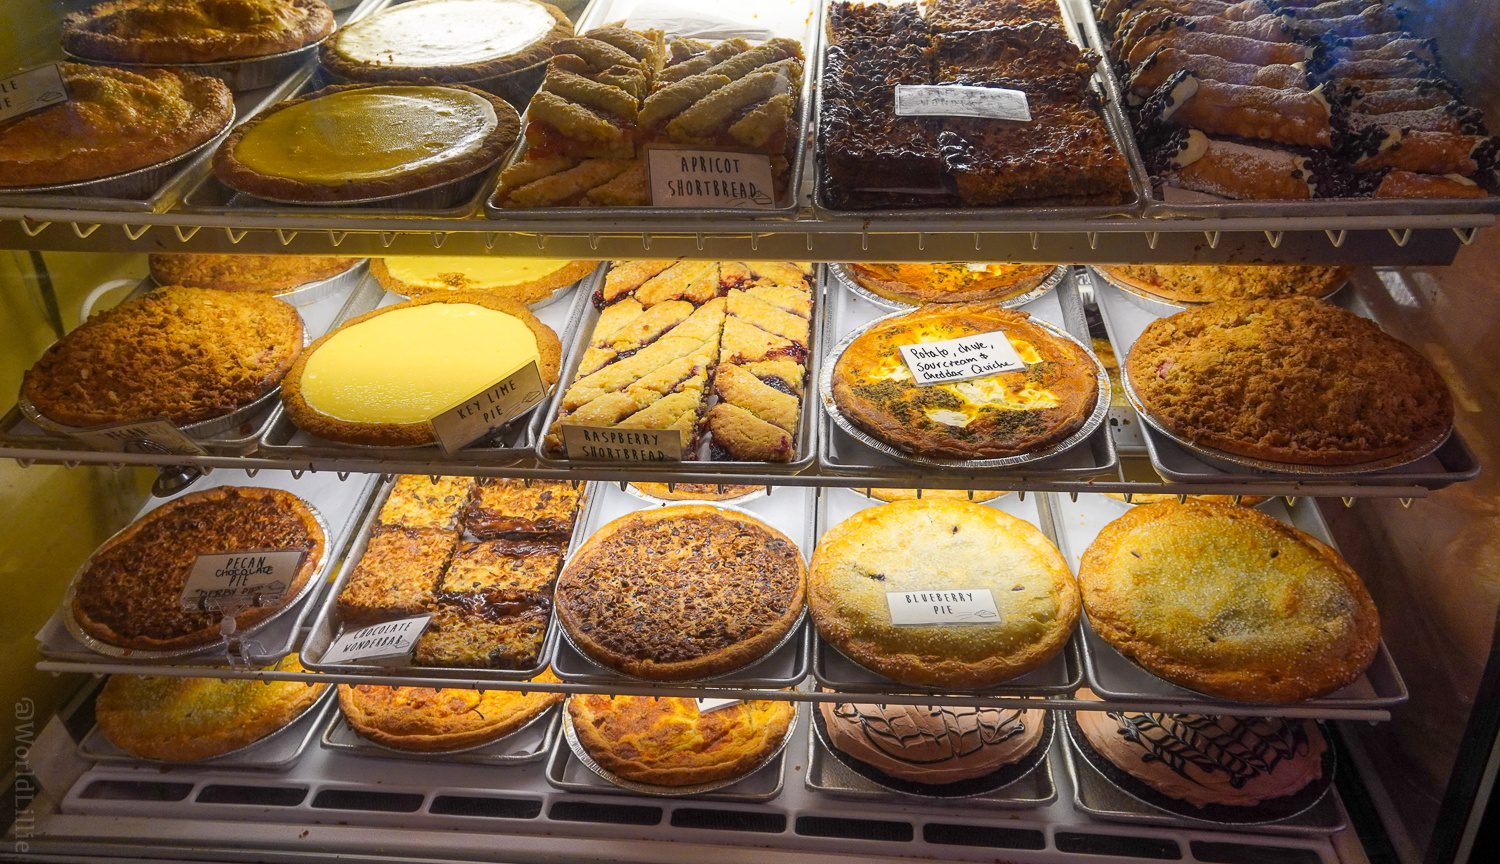 Savory and sweet baked goods (pie!) at Pie in the Sky Bakery in Woods Hole.